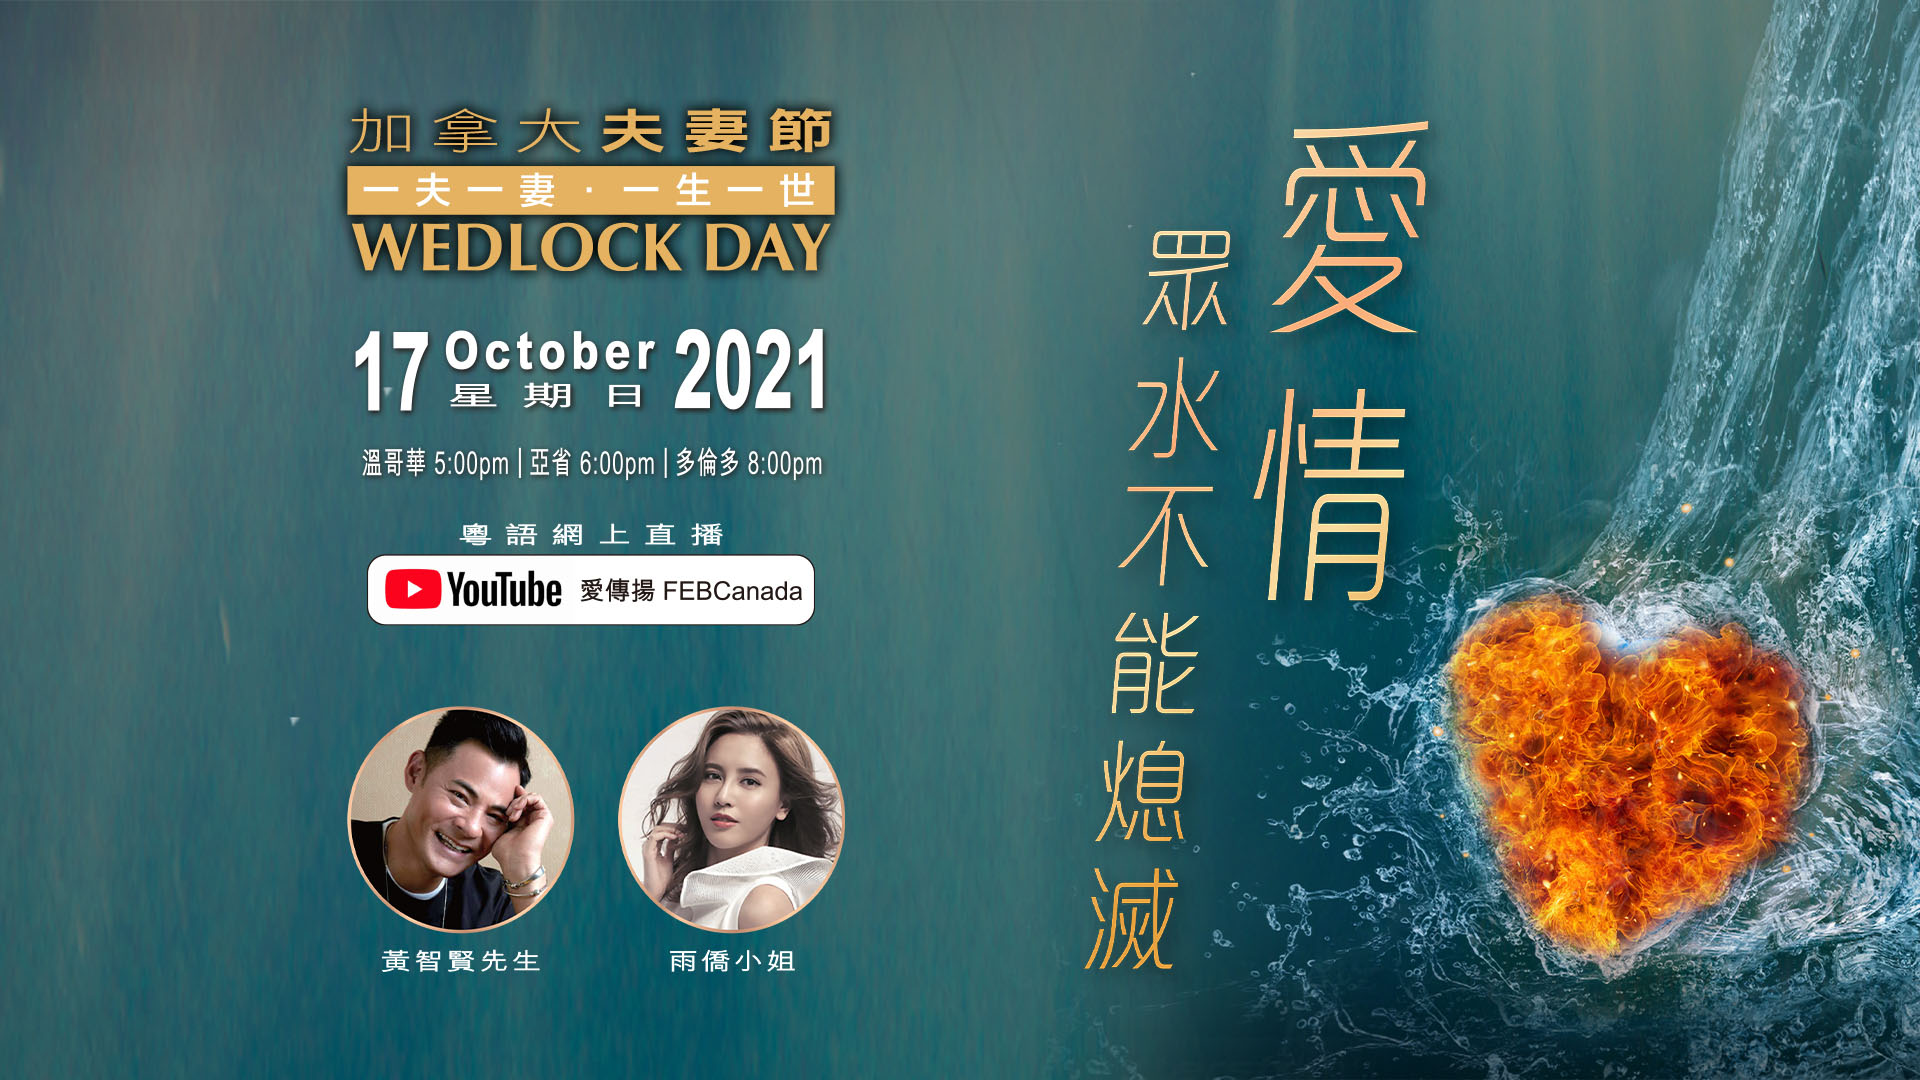 Wedlock Day poster for YouTube and Website